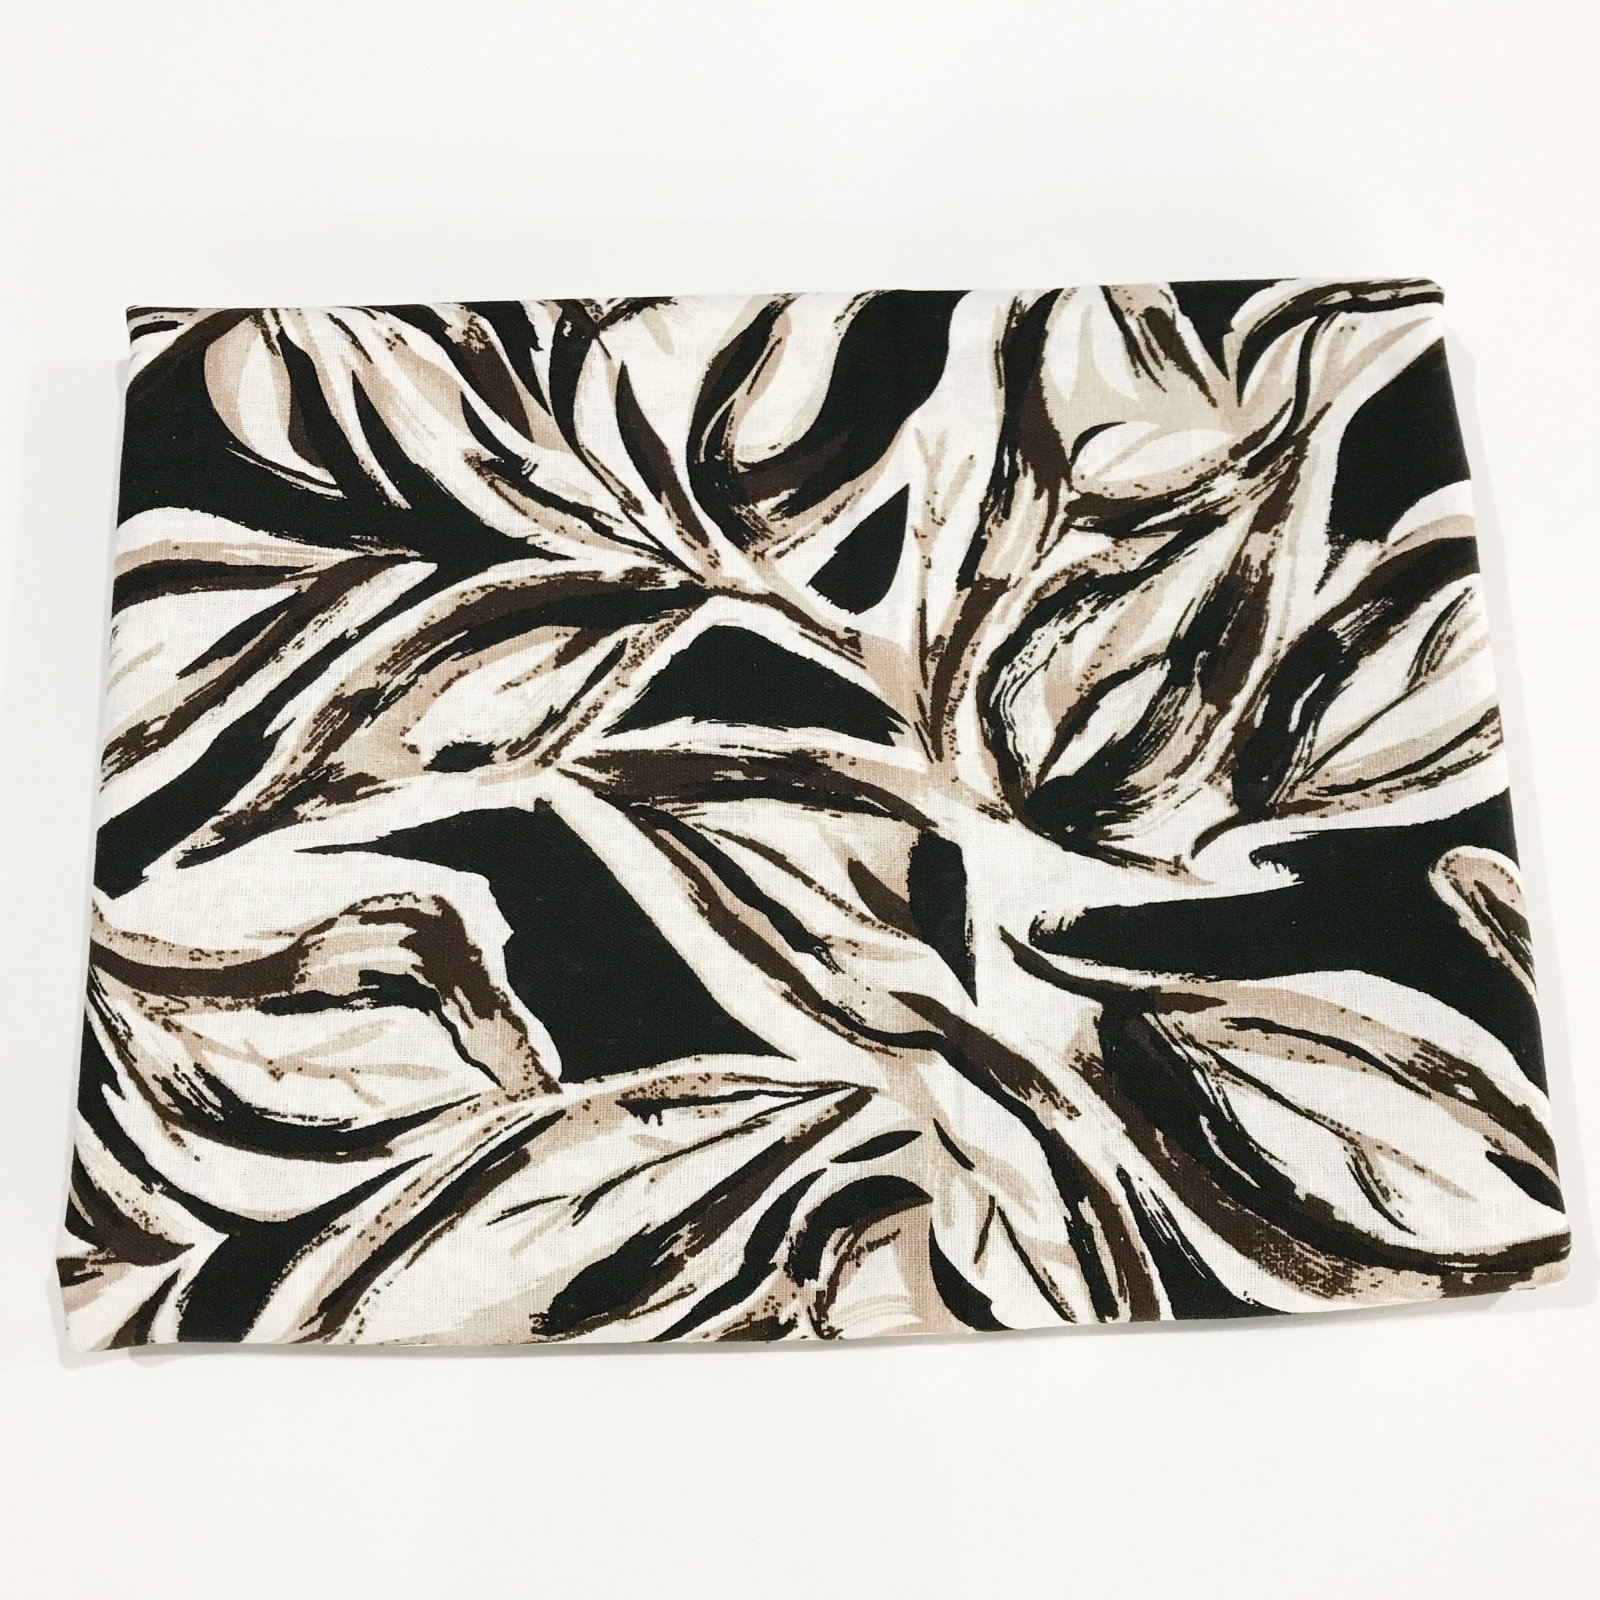 2 yards - Lady McElroy Viscose and Linen Blend - Woodland Foliage